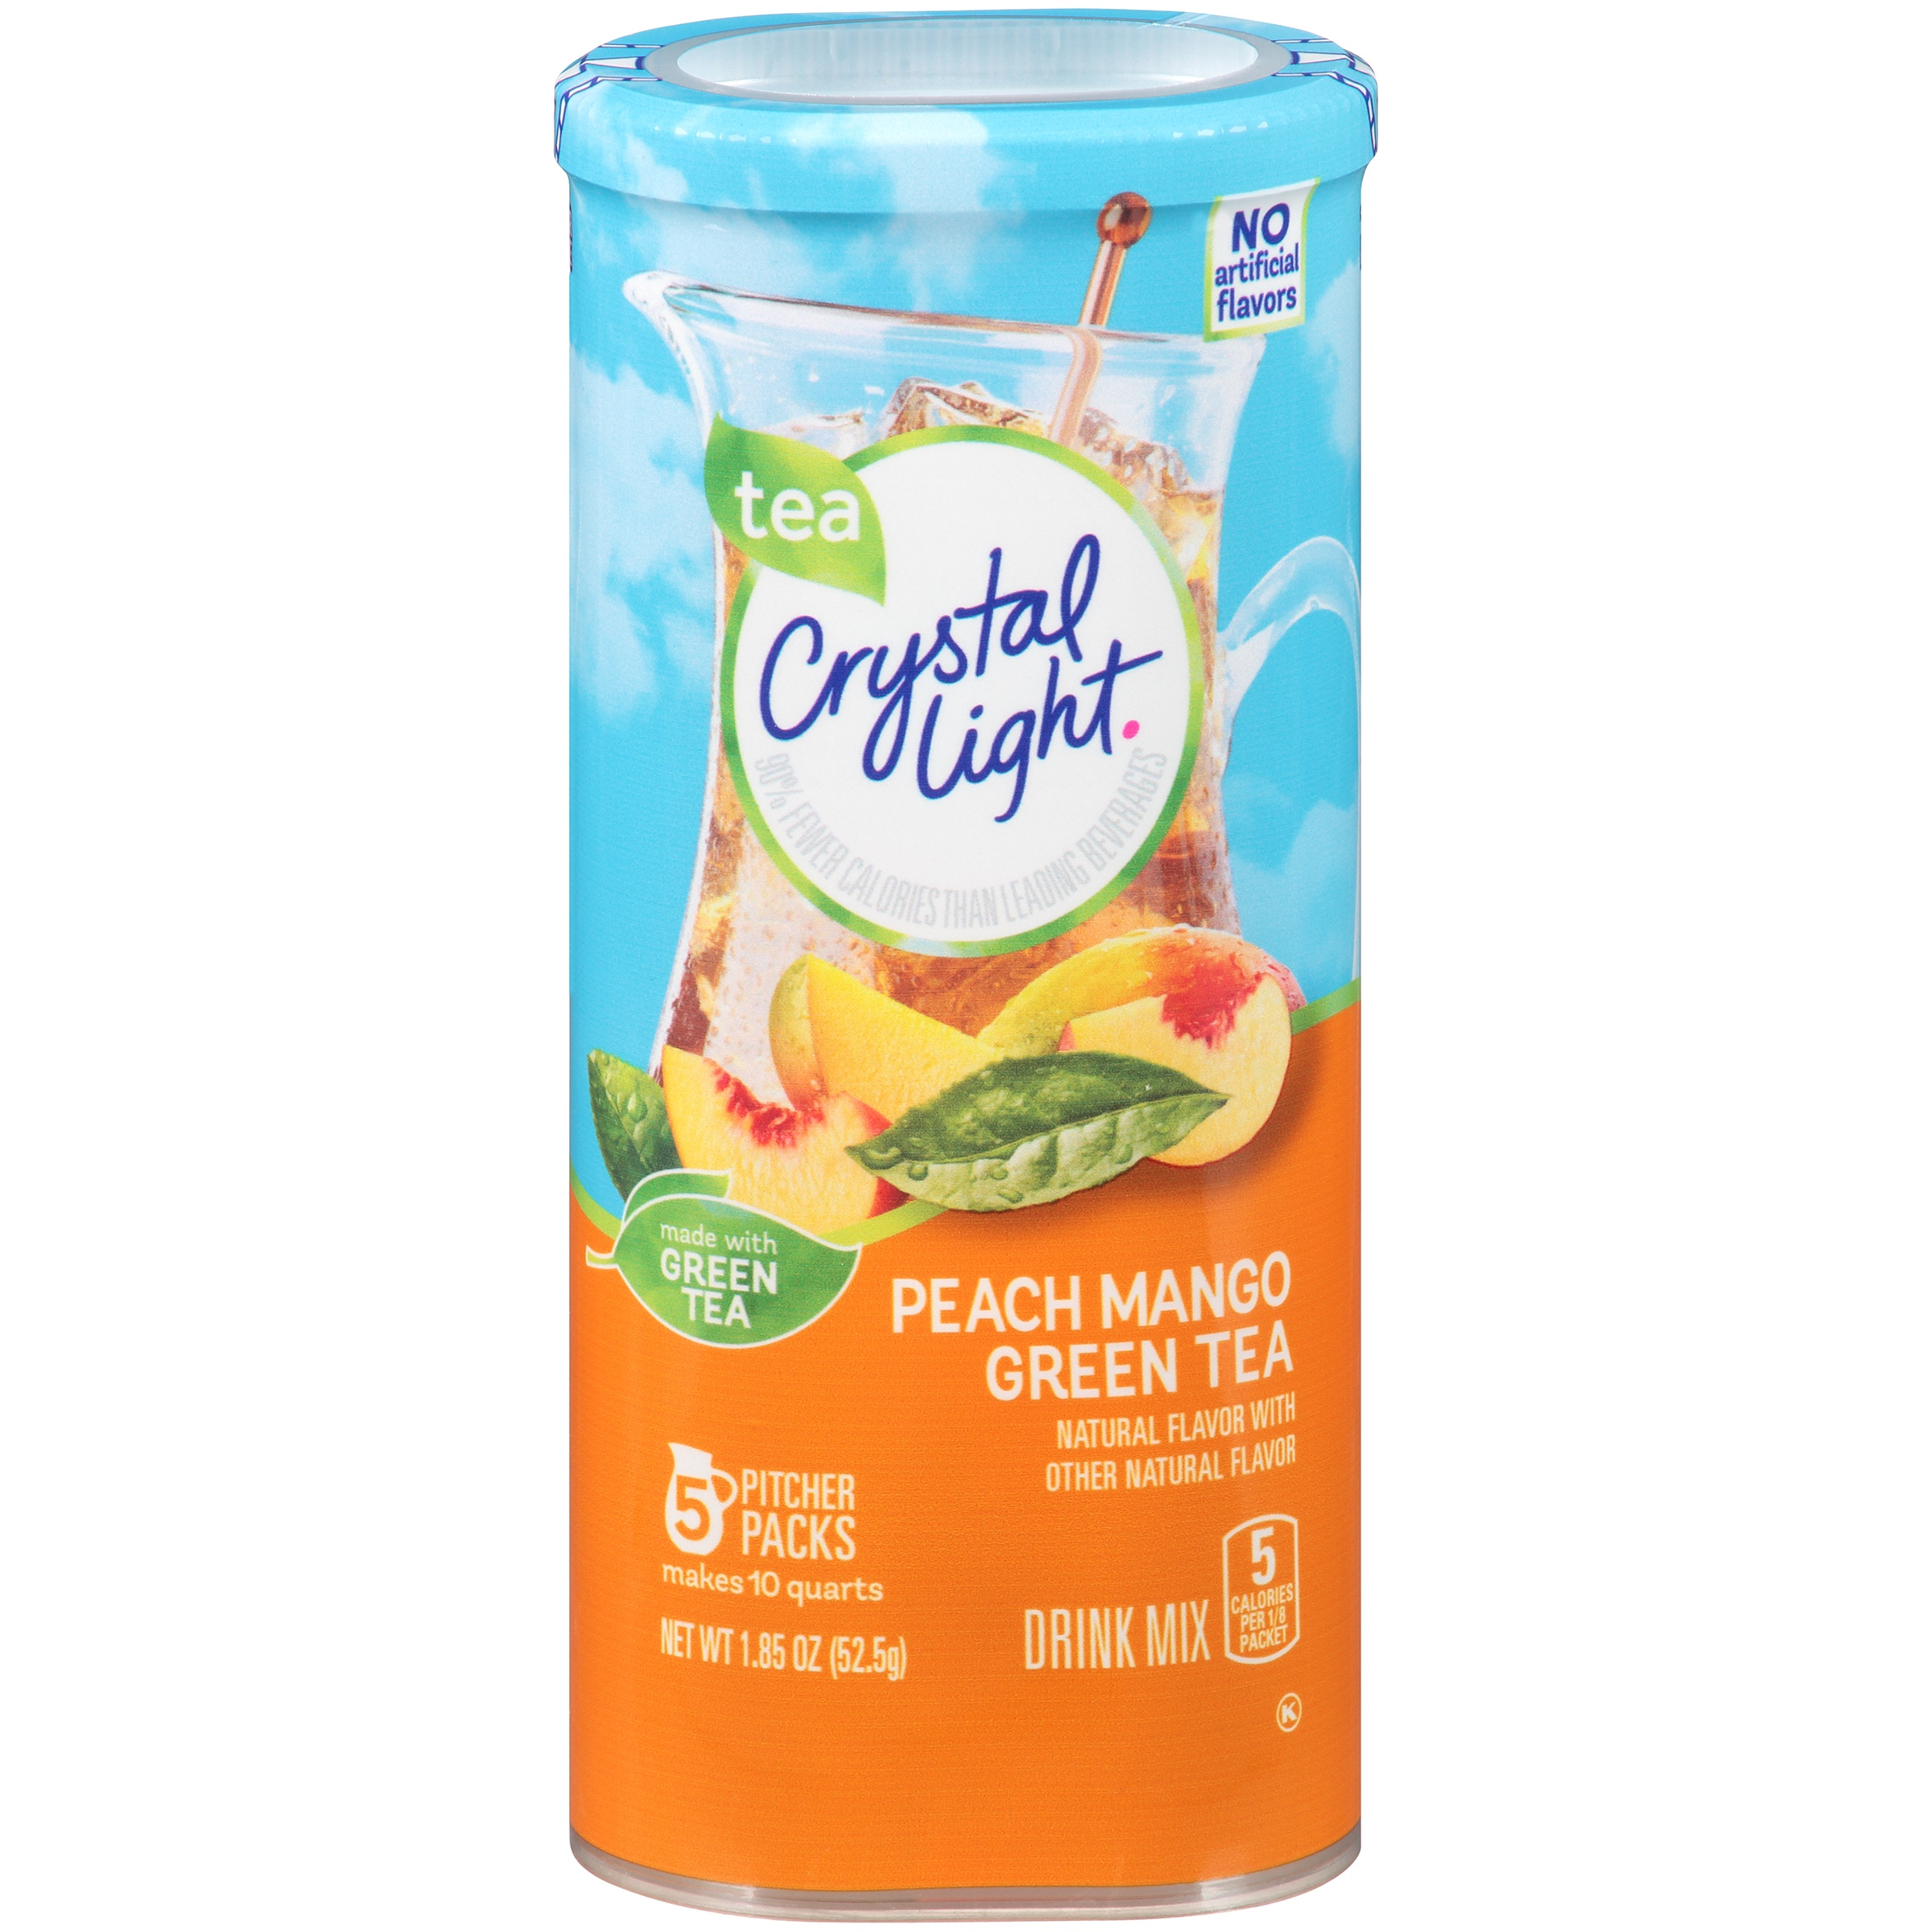 Crystal Light Peach Mango Green Tea Drink Mix 5 ct Canister